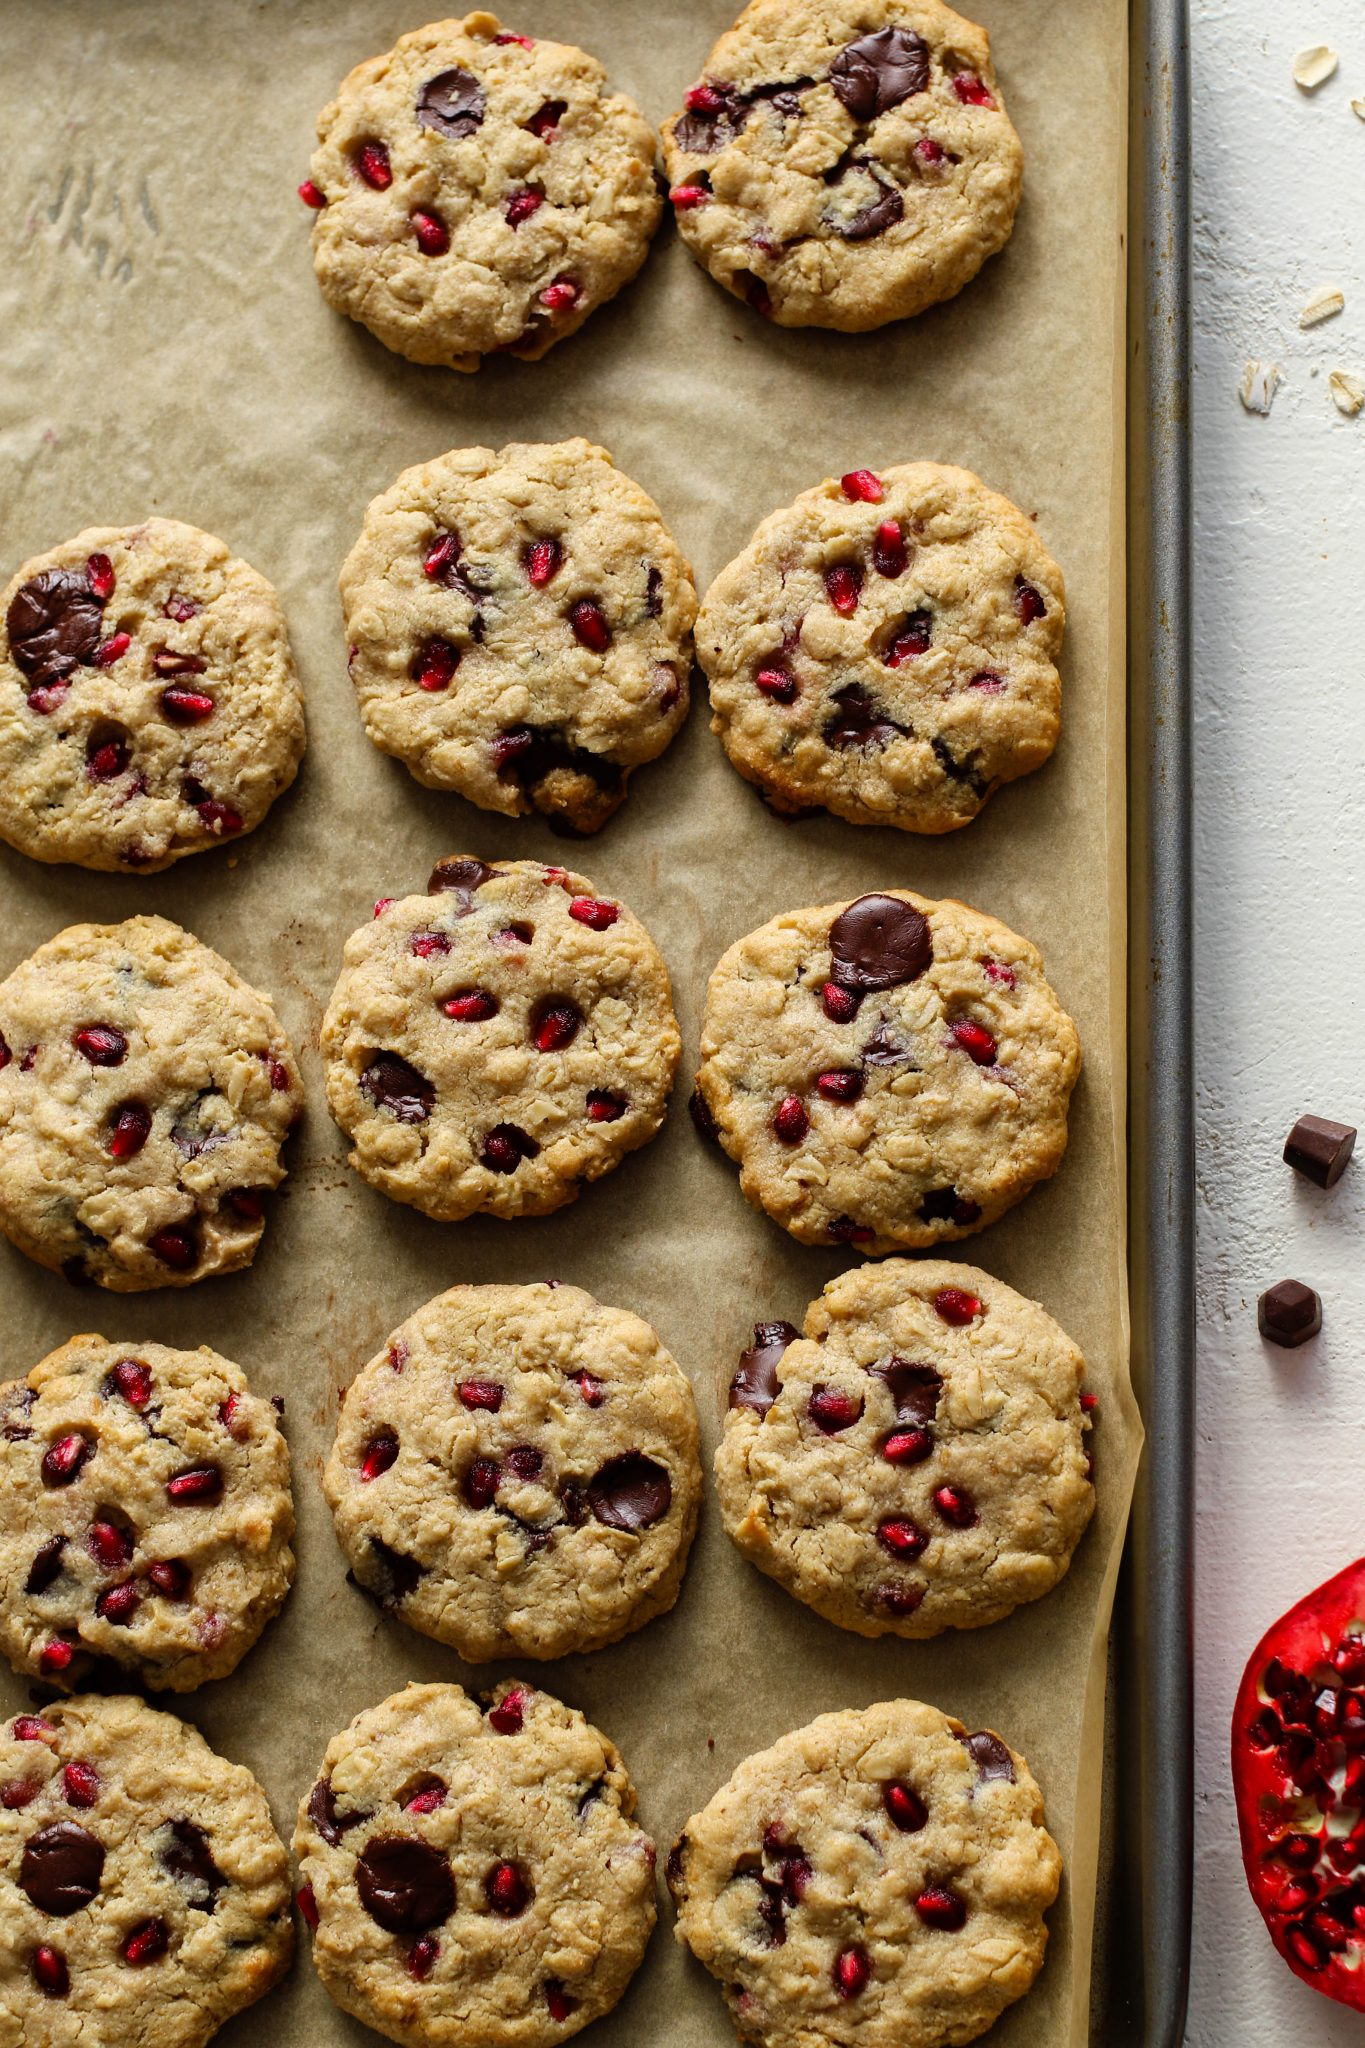 Pomegranate Oatmeal Chocolate Chip Cookies by Flora & Vino